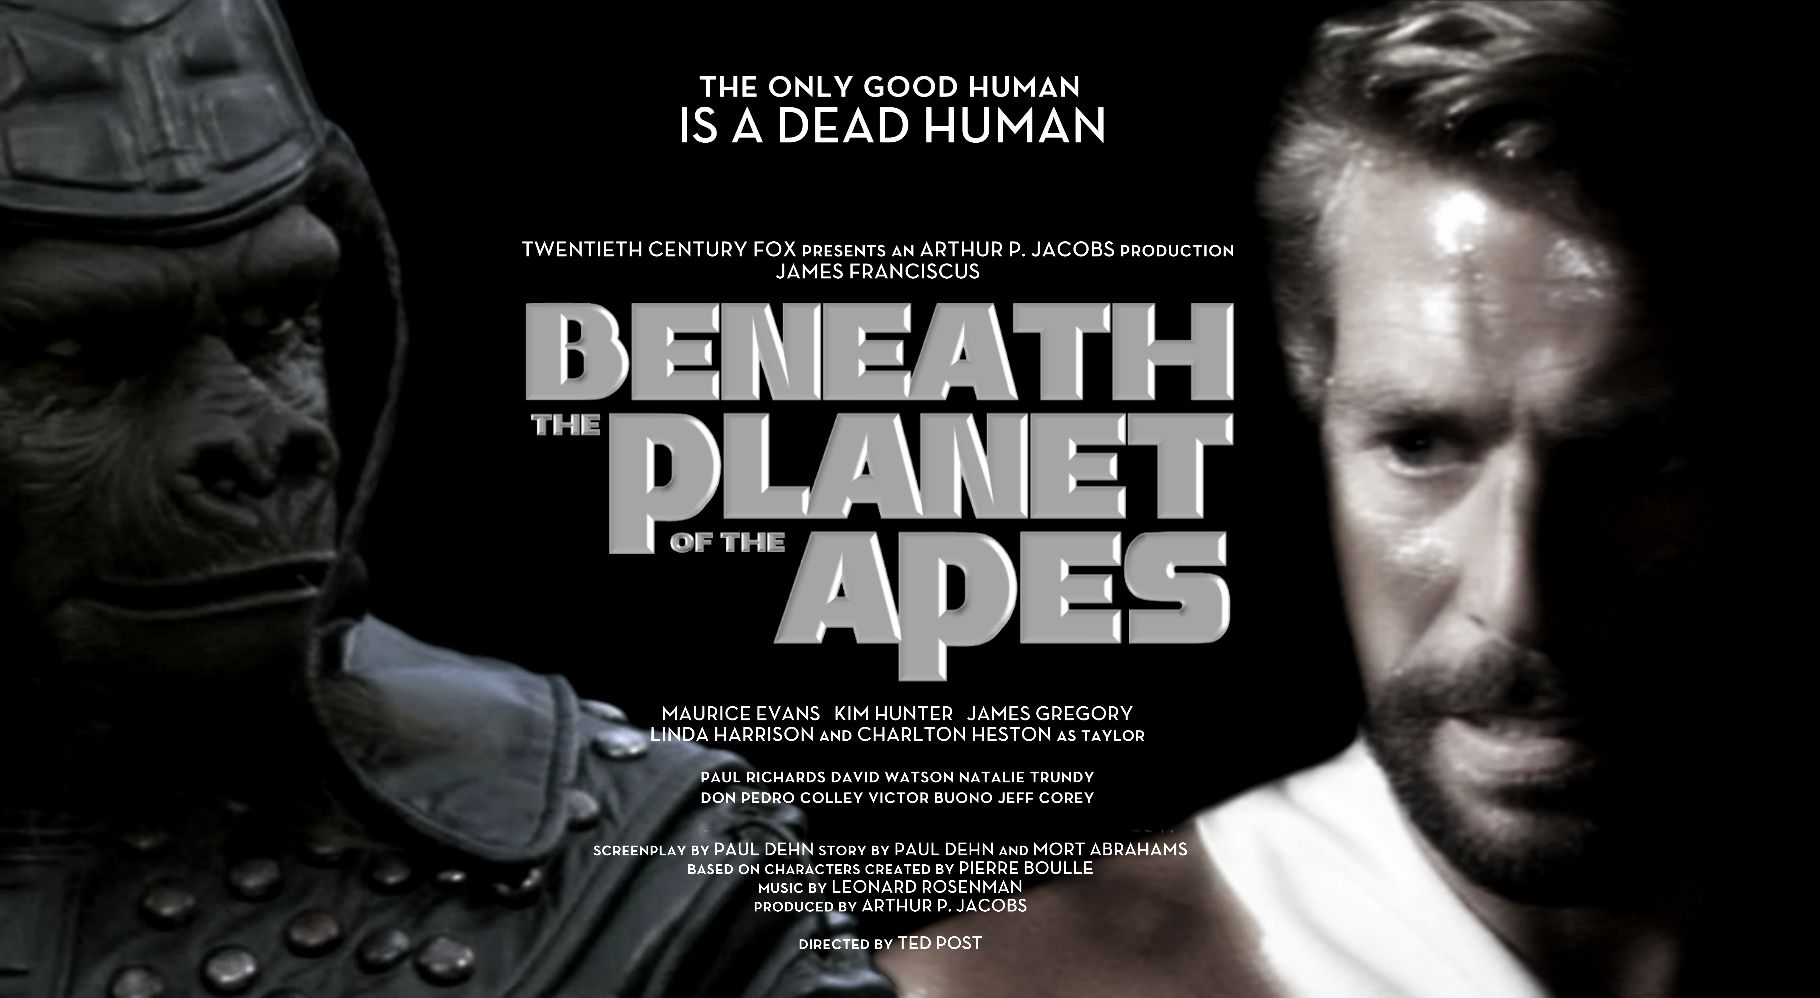 Beneath The Planet Of The Apes 1970 Movie Poster Featuring James Gregory As Ursus And James Franc Planet Of The Apes Science Fiction Movies Plant Of The Apes